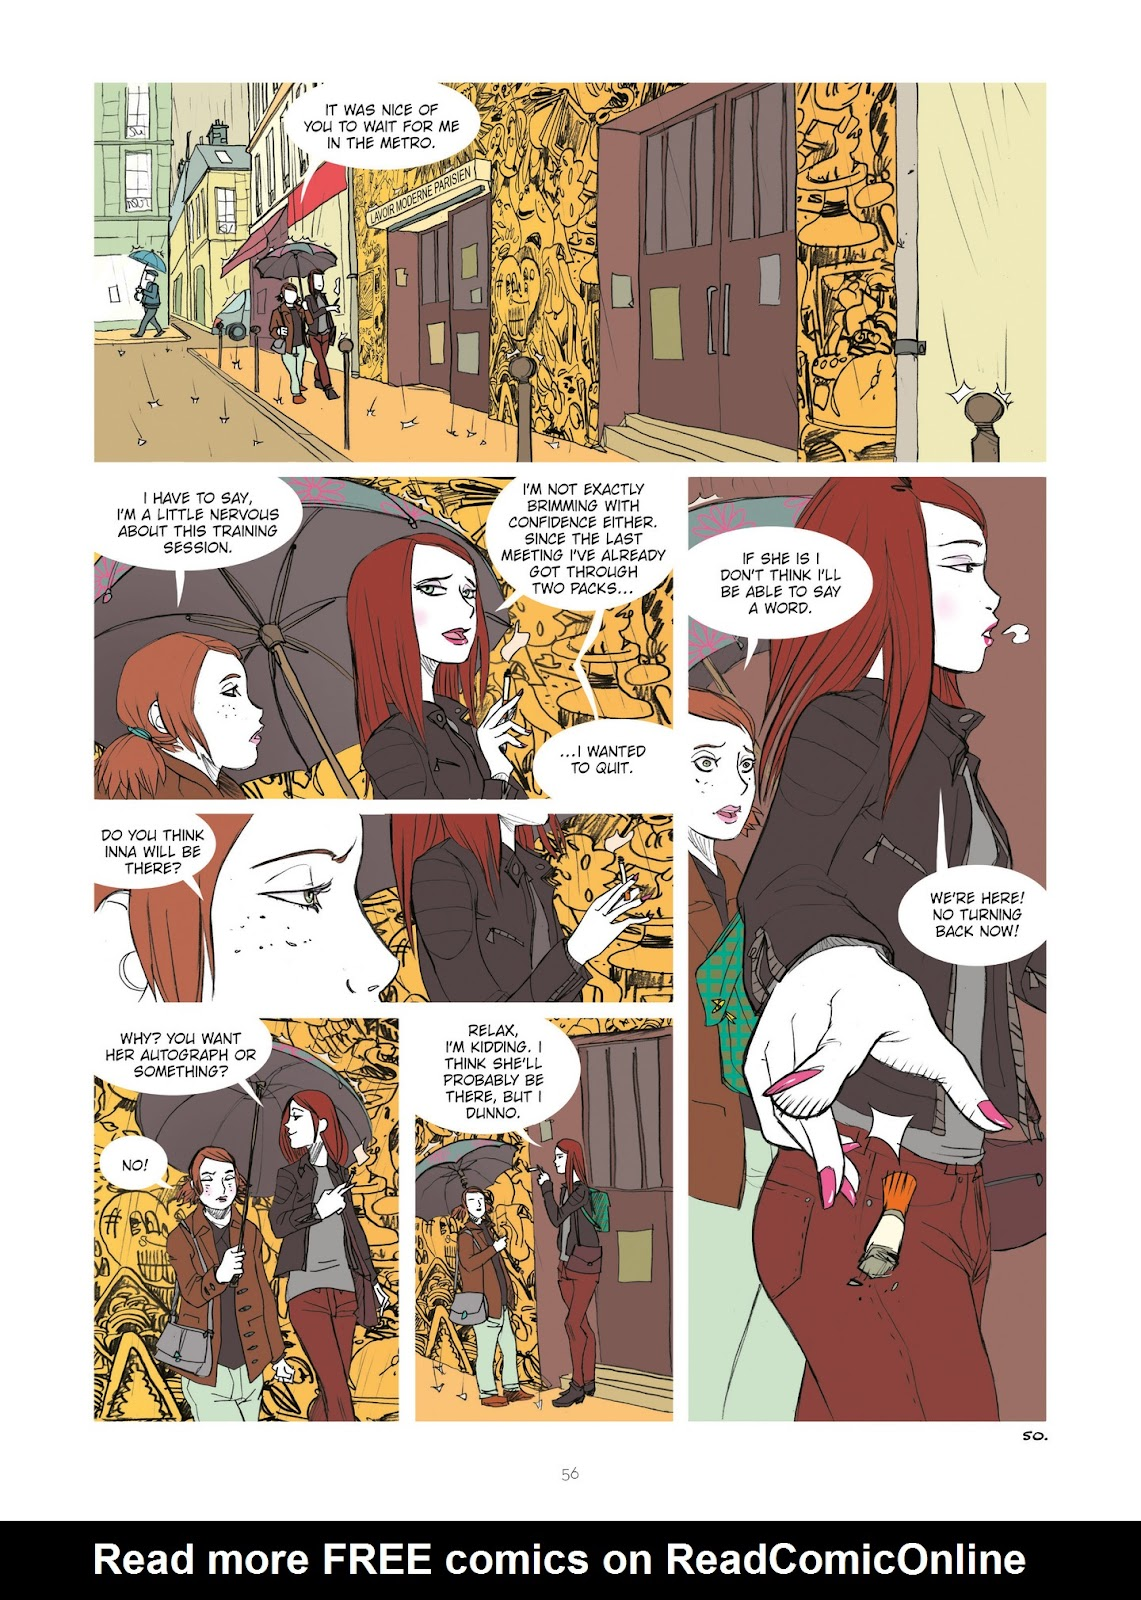 Read online Diary of A Femen comic -  Issue # TPB - 58